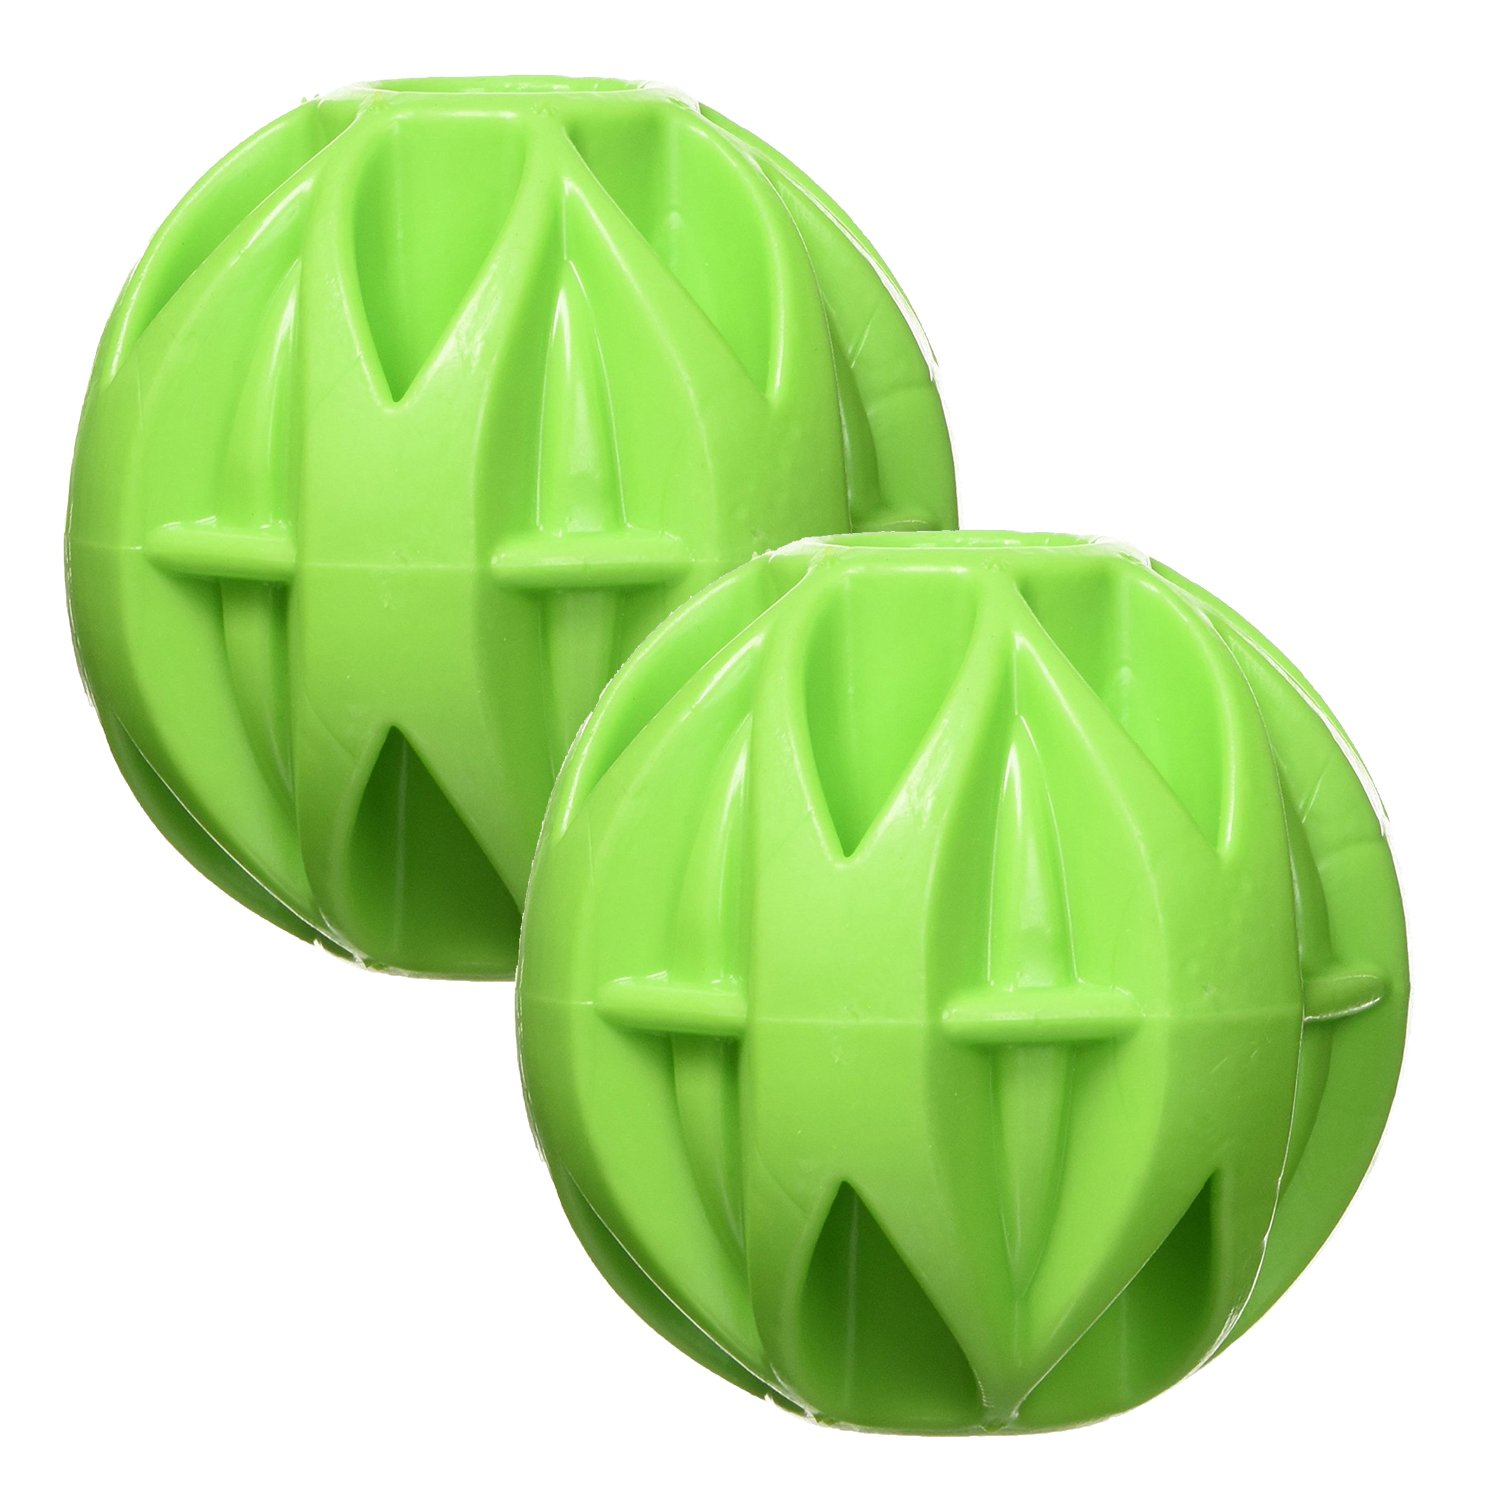 JW Pet Company Small Megalast Ball - Large-2 Pack